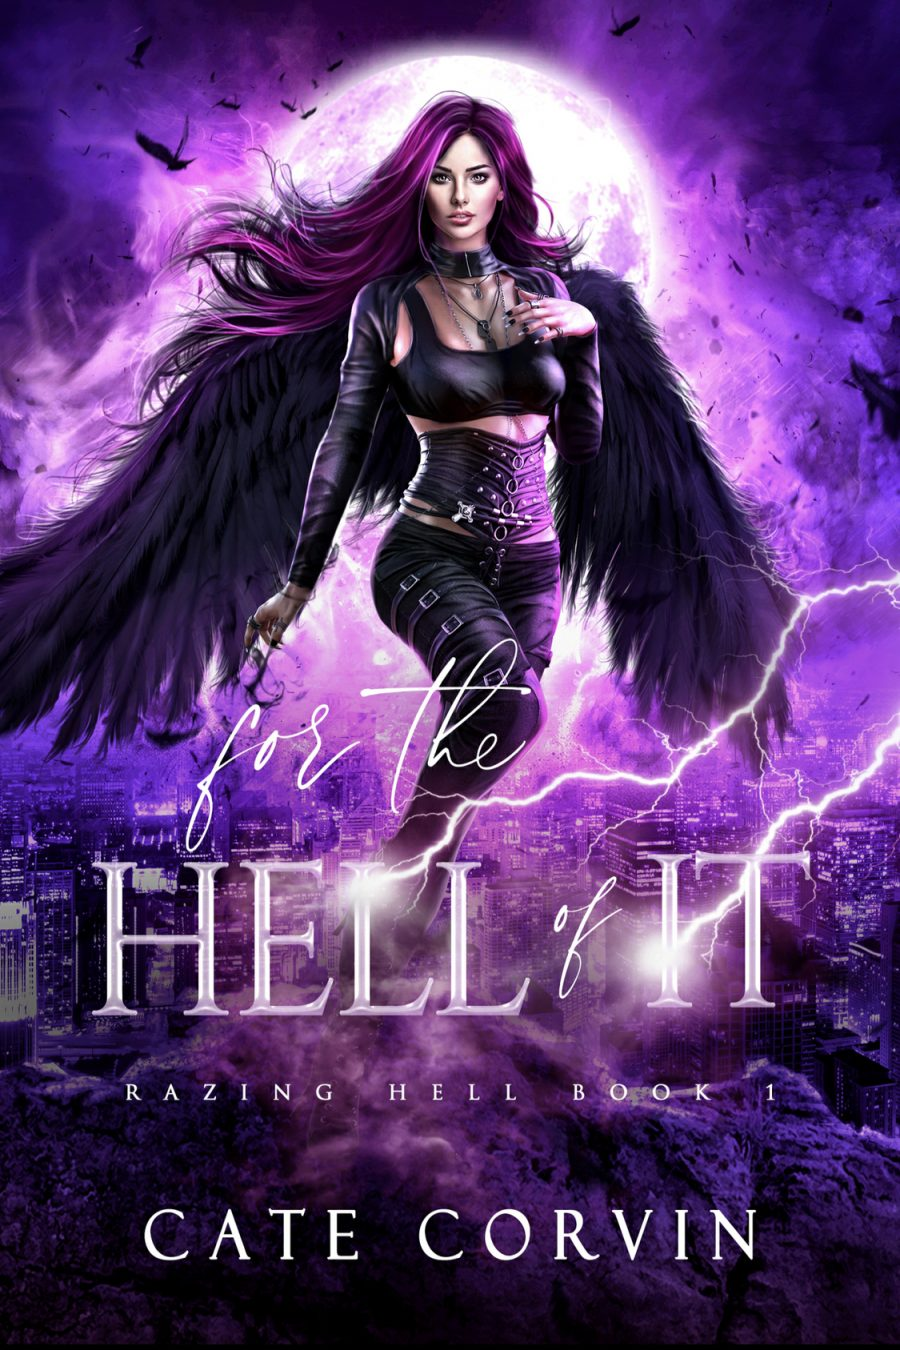 For the Hell of It (Razing Hell - Book 1) by Cate Corvin - A Book Review #BookReview #Fantasy #RH #FastBurn #KindleUnlimited #KU